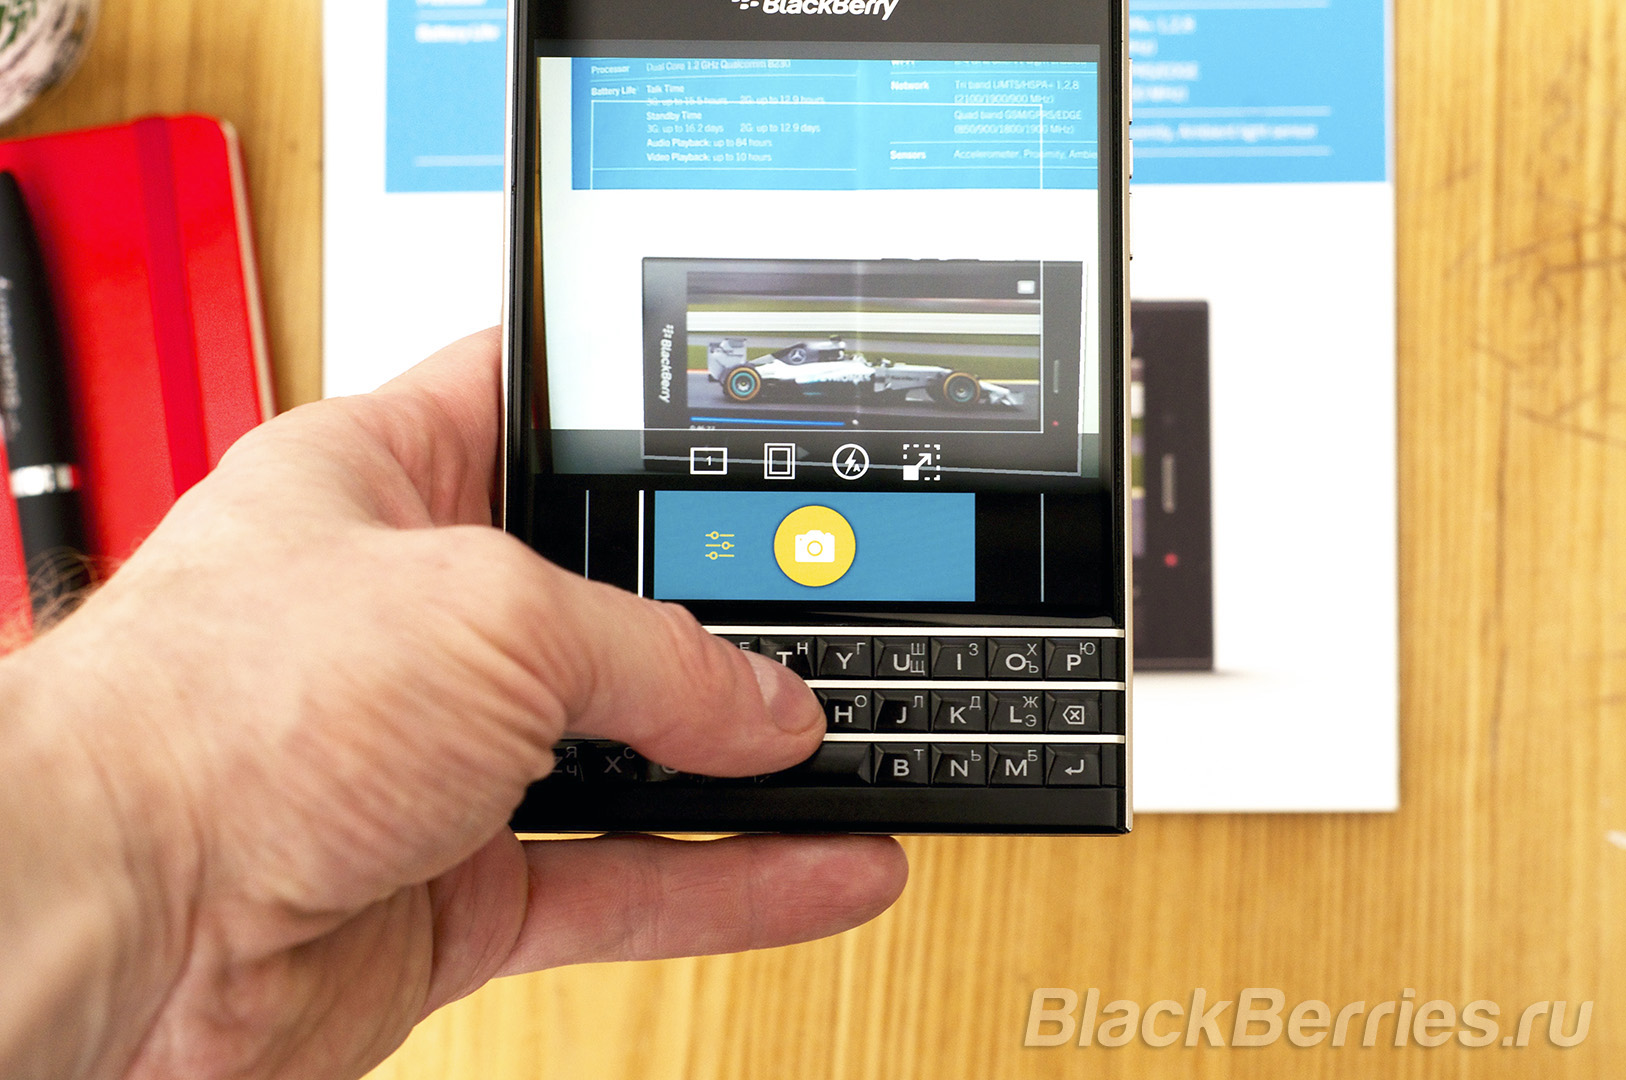 BlackBerry-Passport-App-Review-2-11